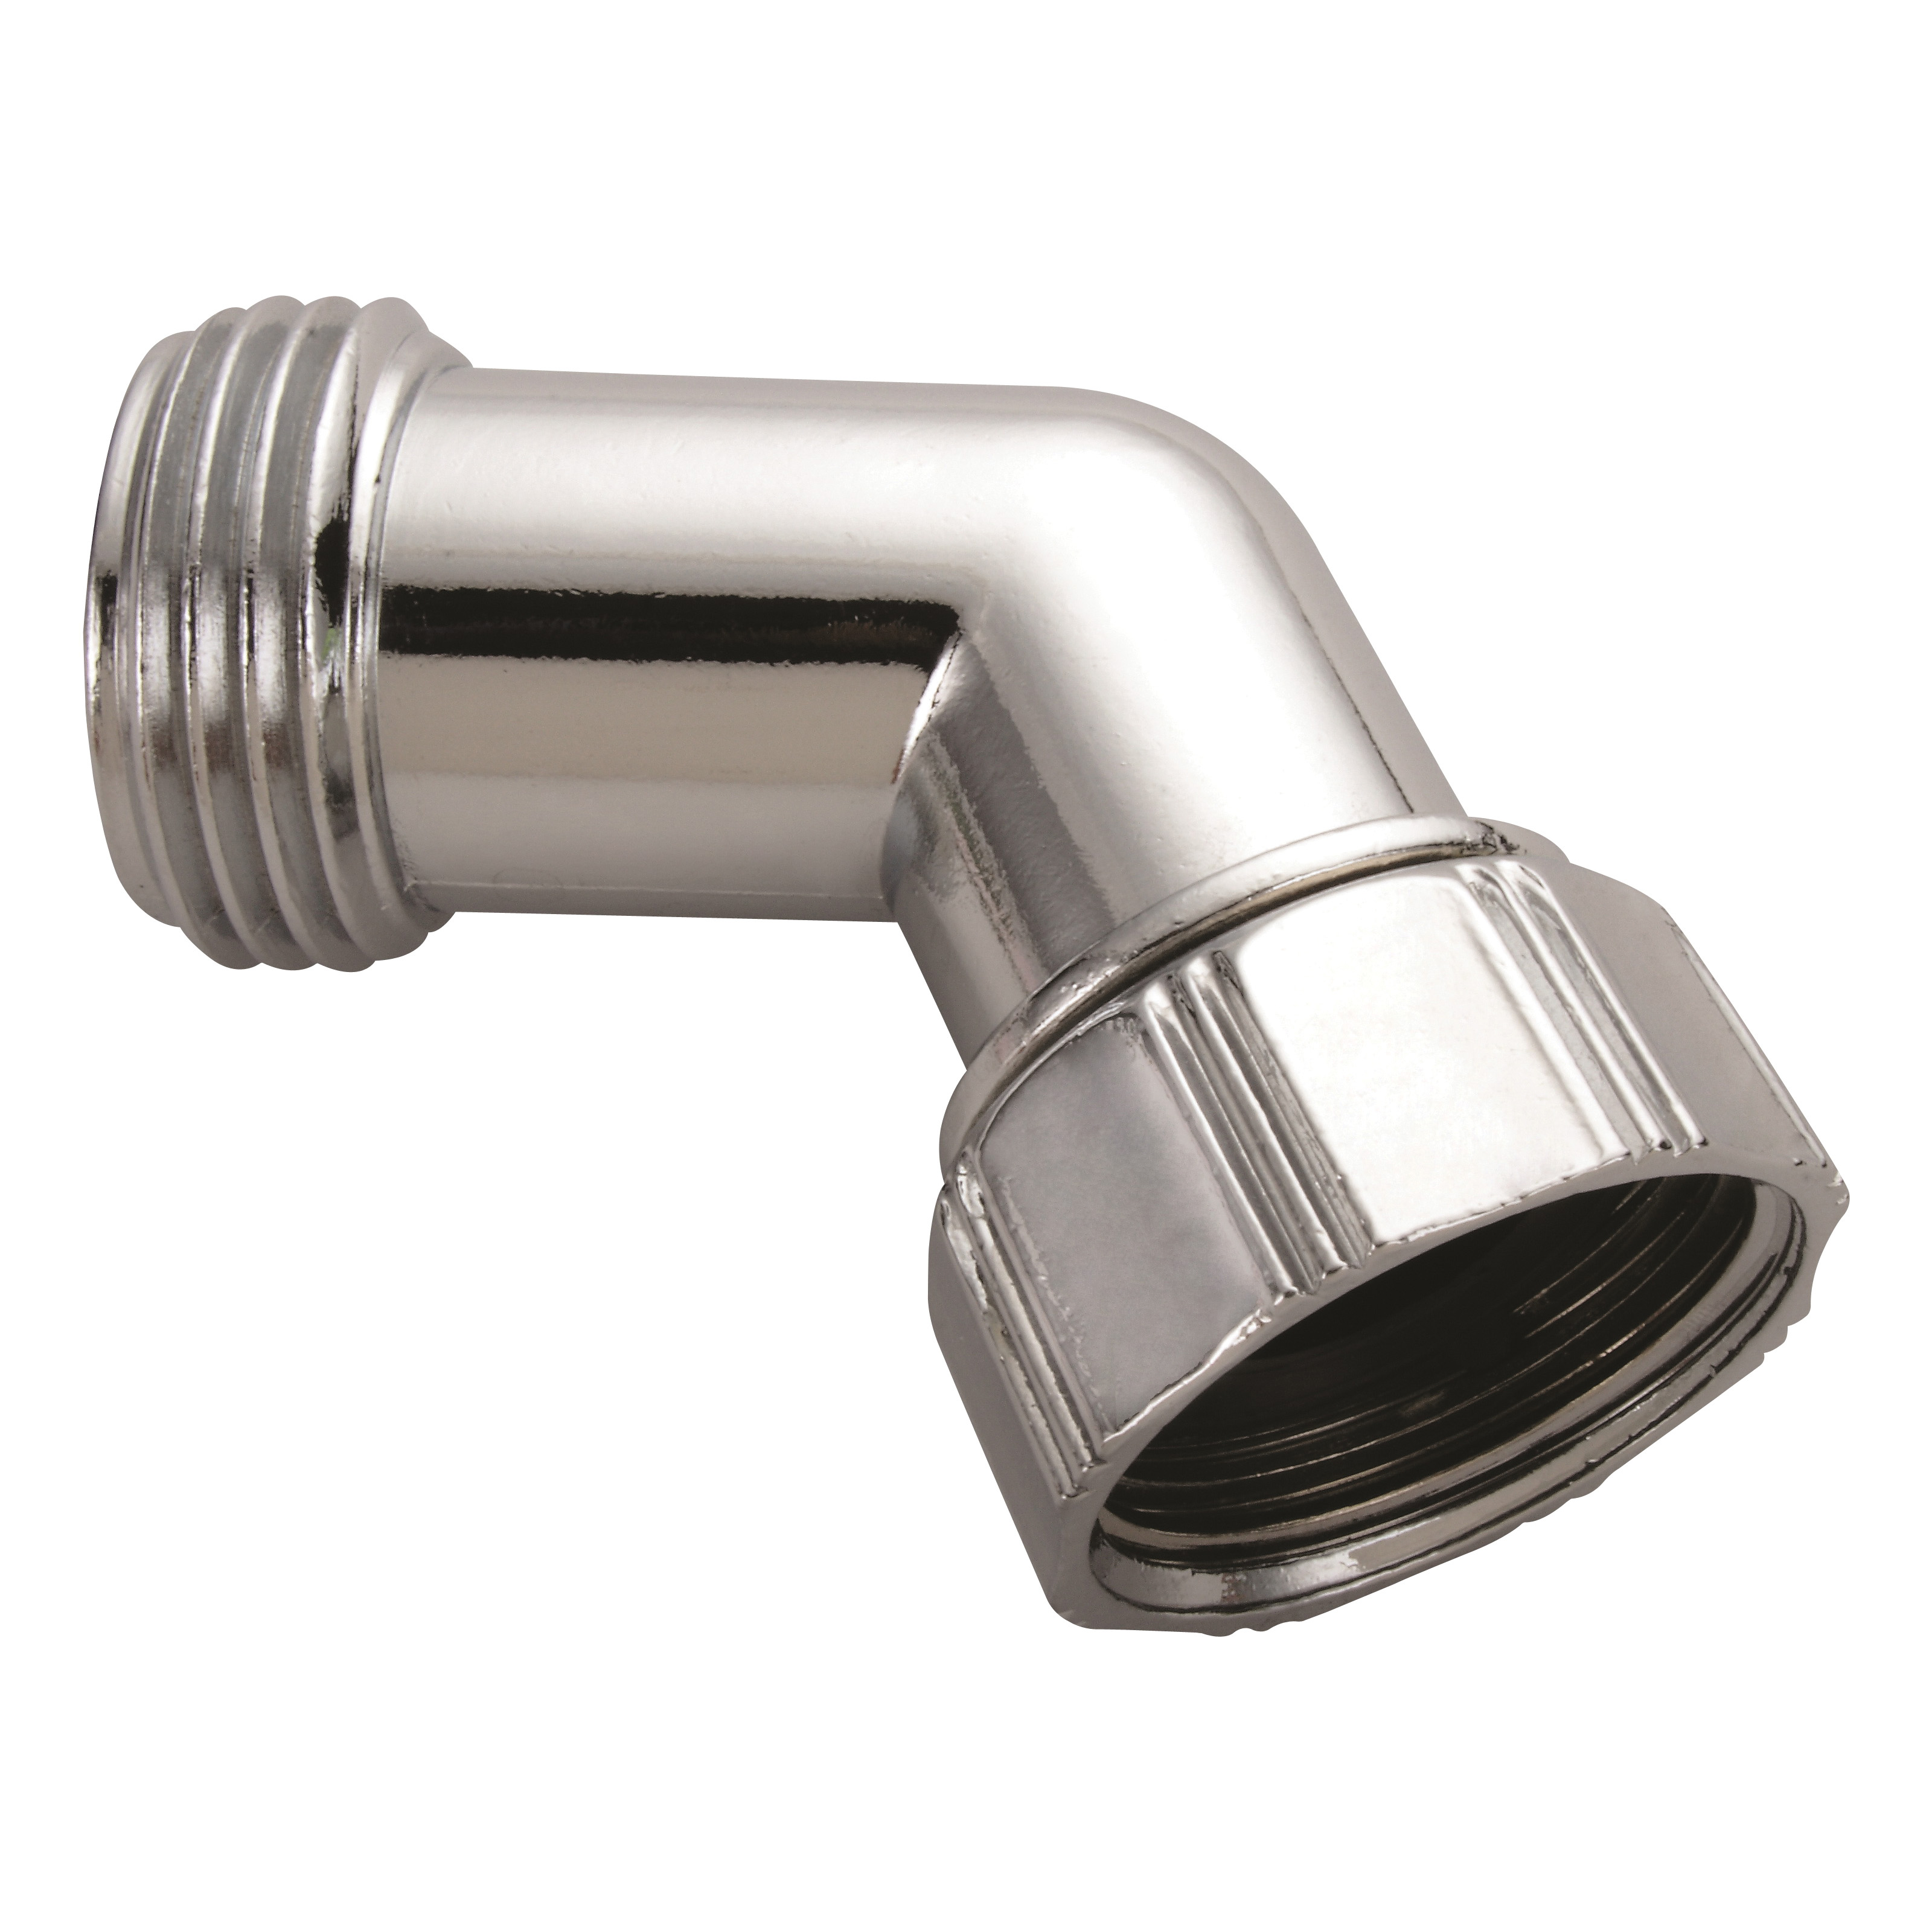 Picture of Landscapers Select GC507 Hose Connector, Female and Male, Zinc, Silver, For: Hose Couplings